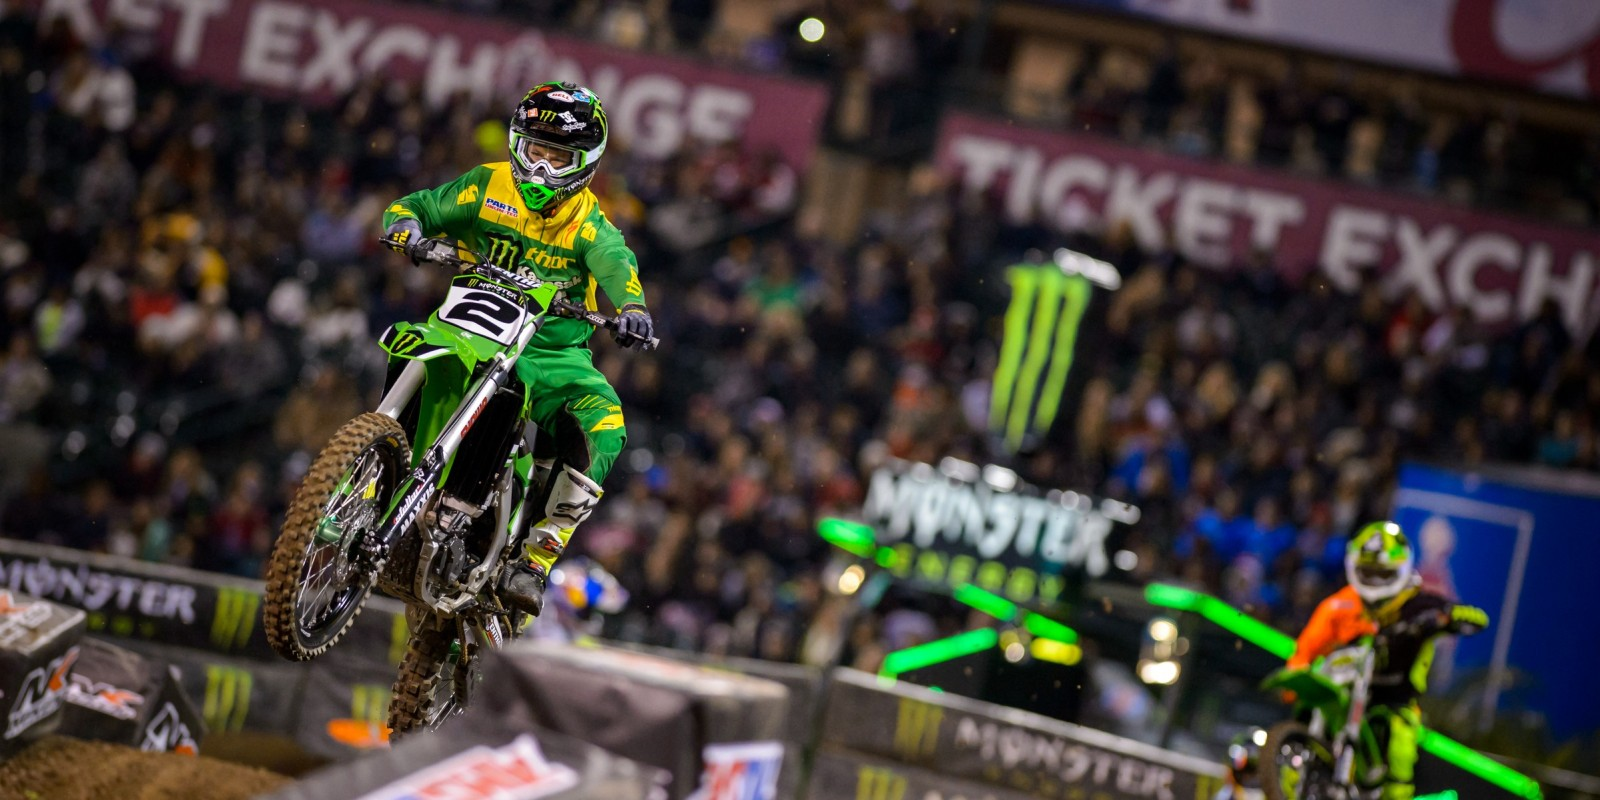 Jeremy McGrath during the Anaheim stop of the 2016 SX season.